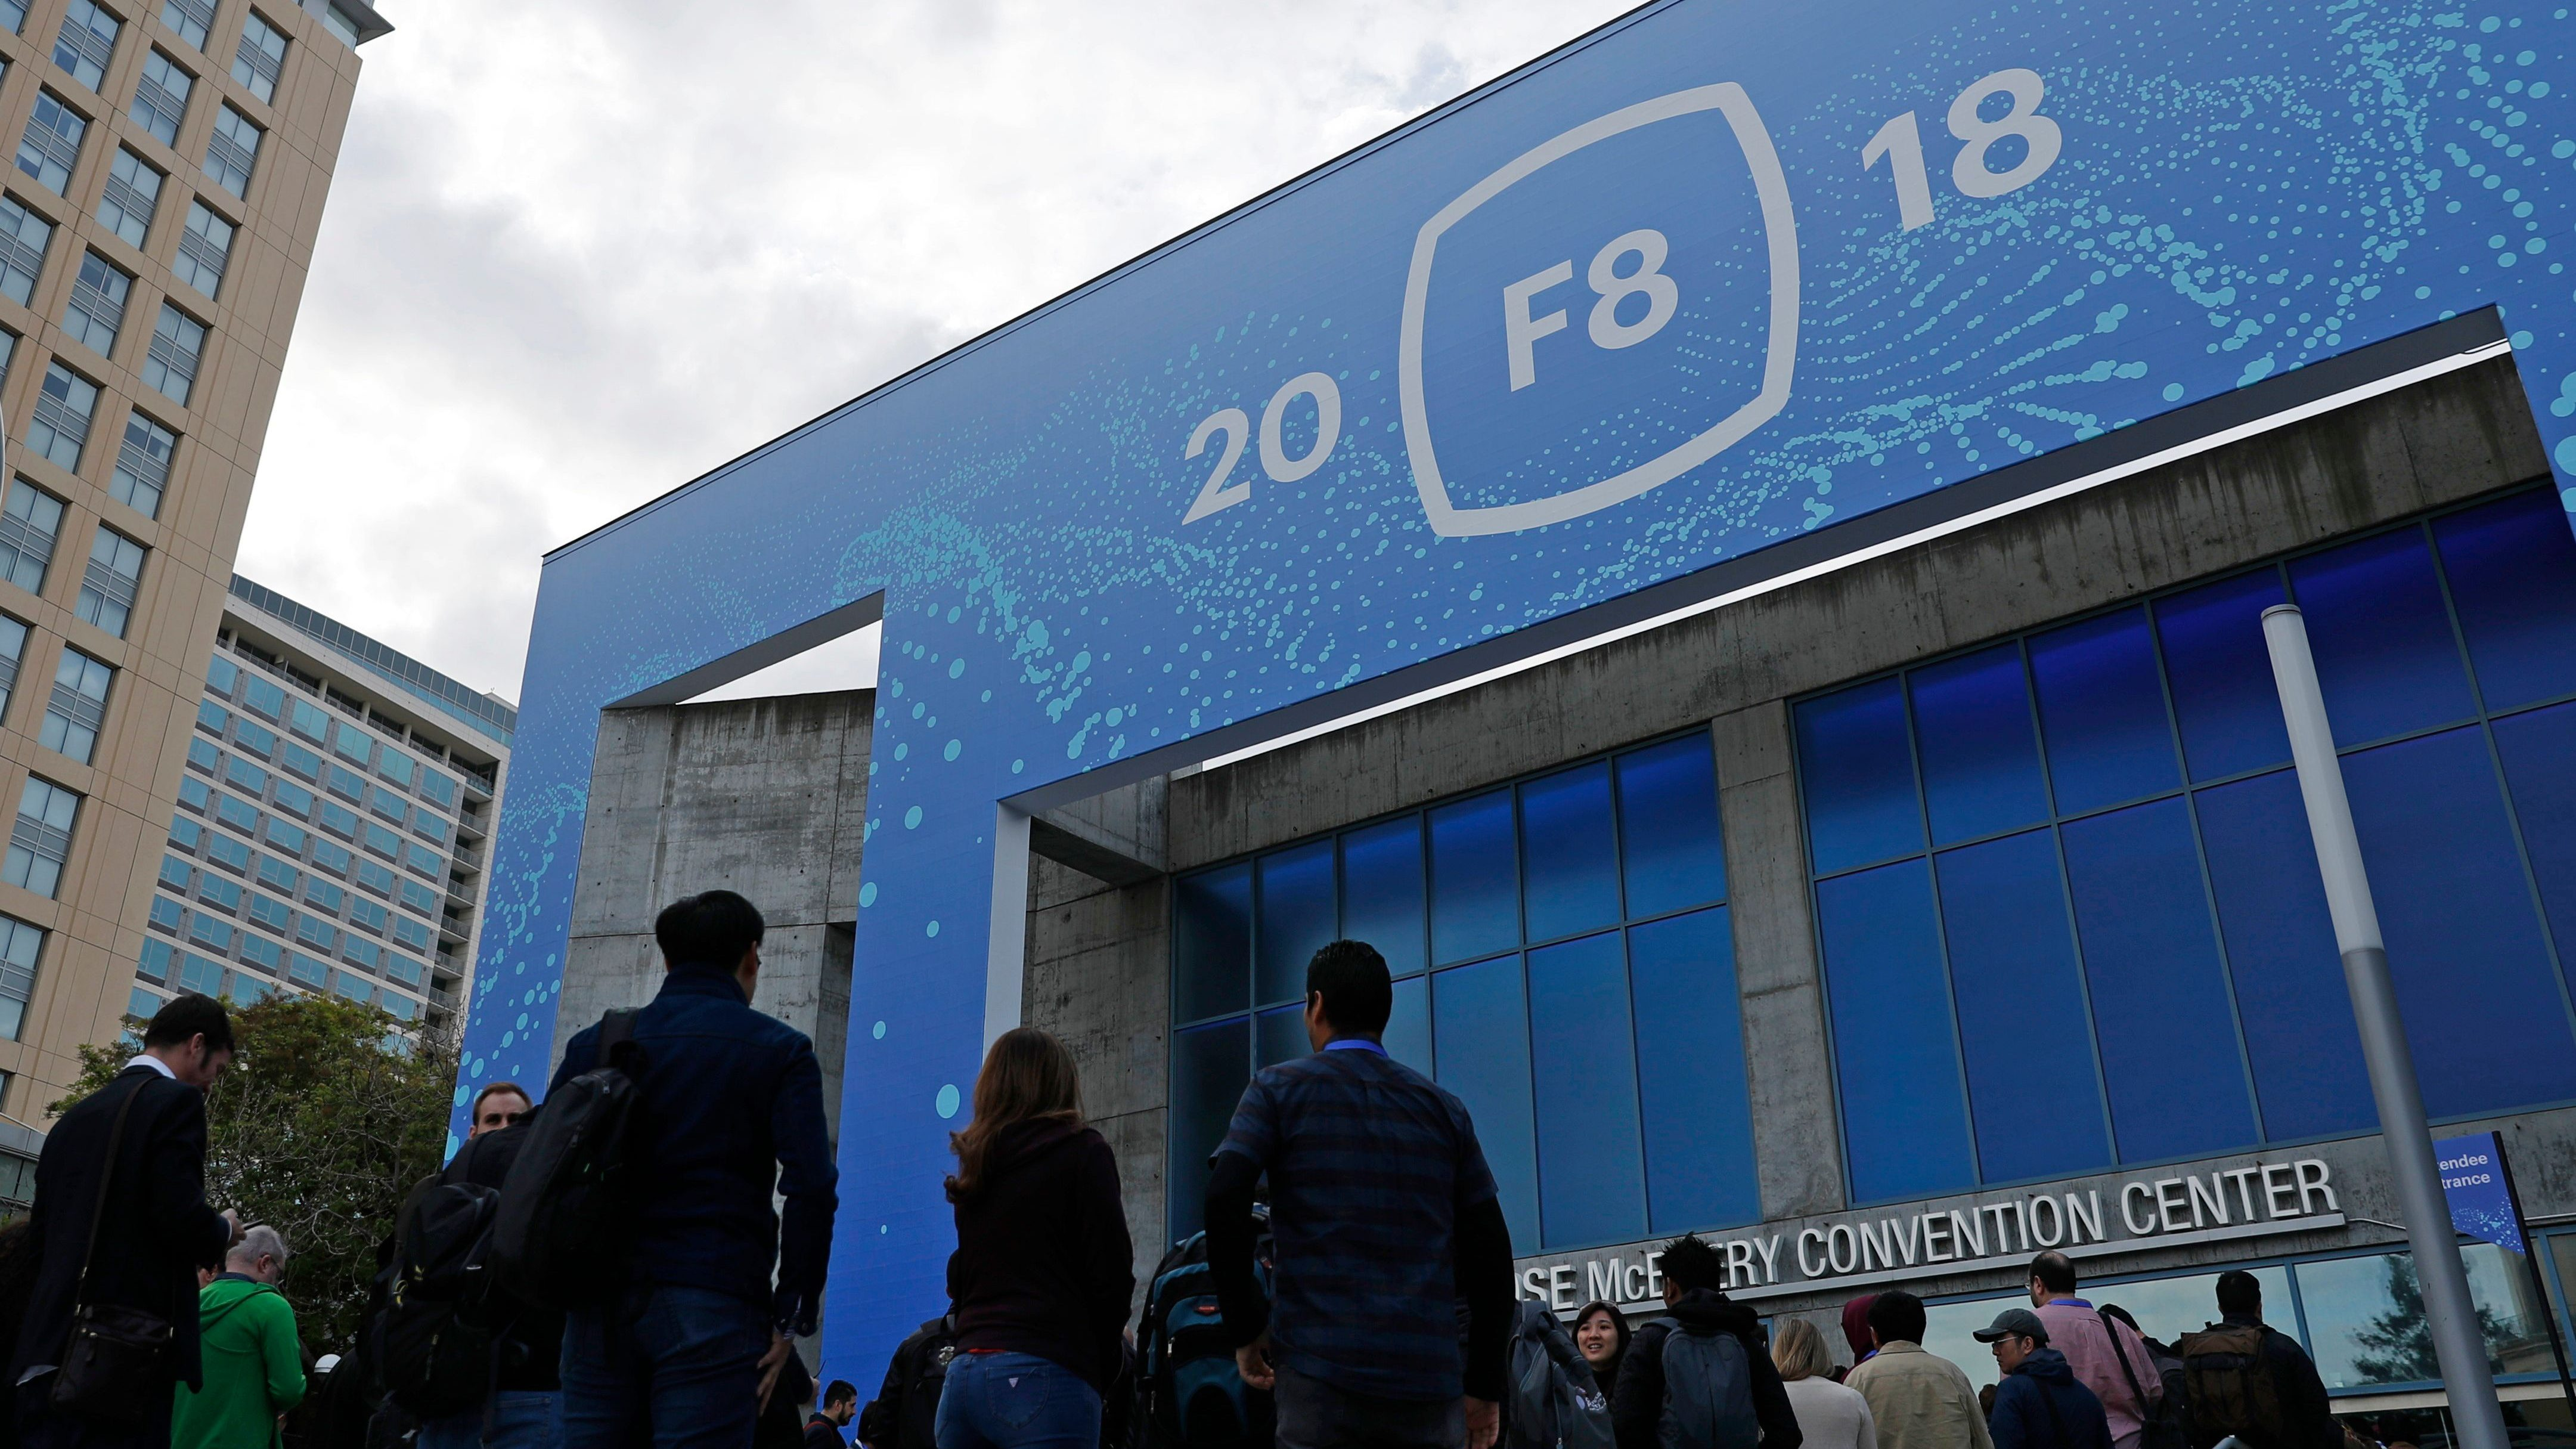 Guests enter to atttend Facebook CEO Mark Zuckerberg's keynote speech at Facebook Inc's annual F8 developers conference in San Jose, California, U.S. May 1, 2018. REUTERS/Stephen Lam - HP1EE5118BXKL